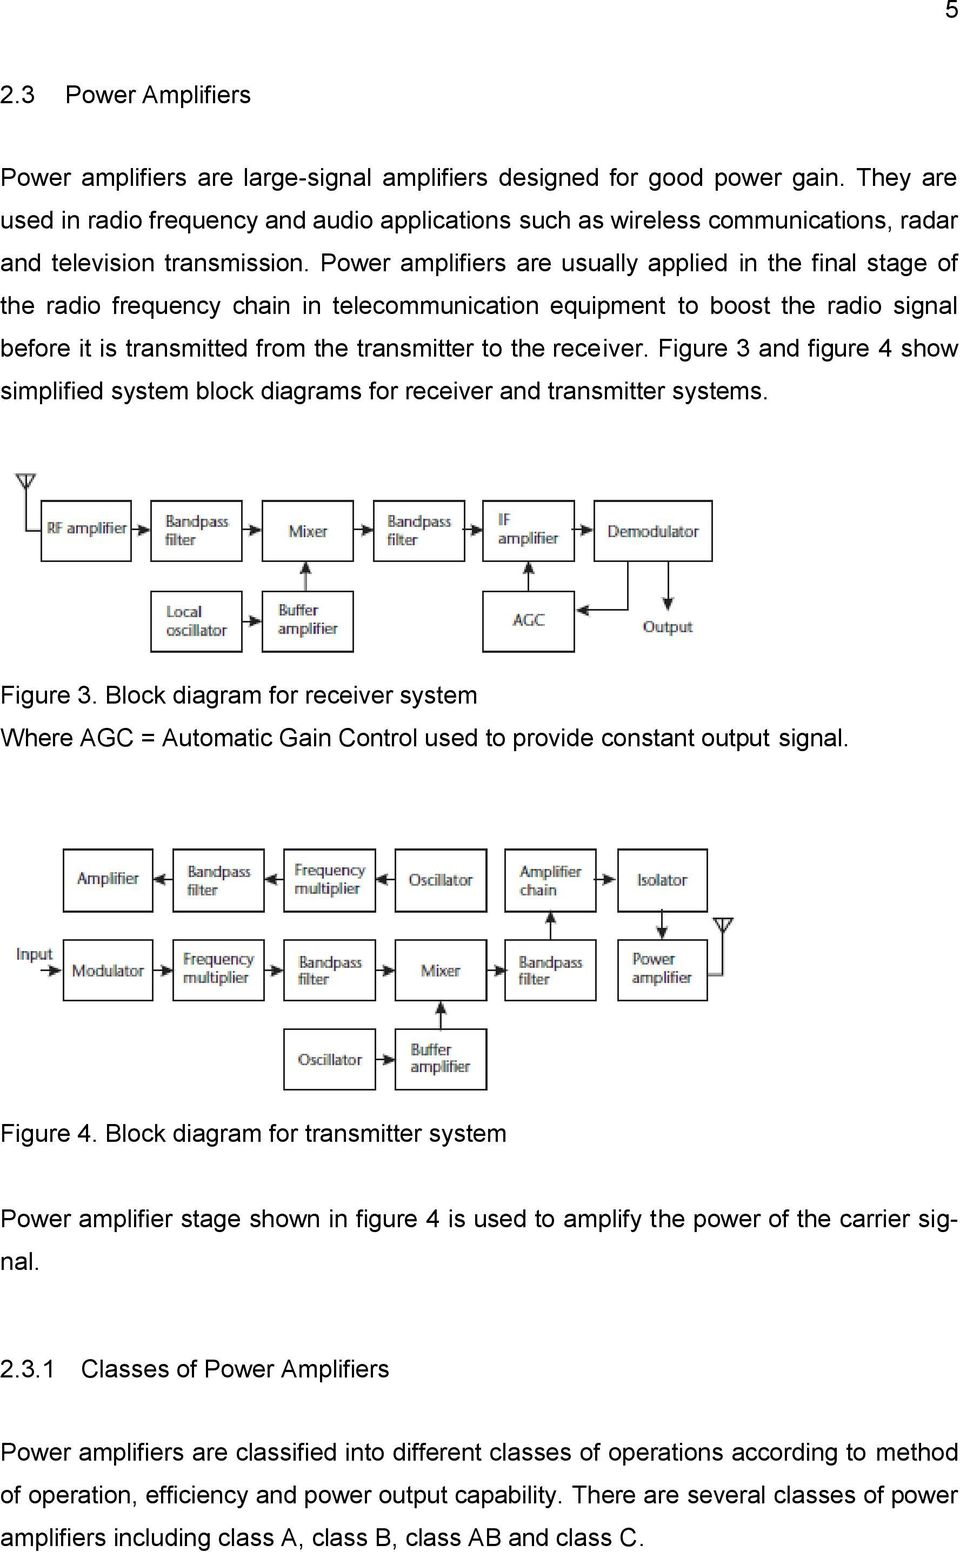 Class ab power amplifier thesis